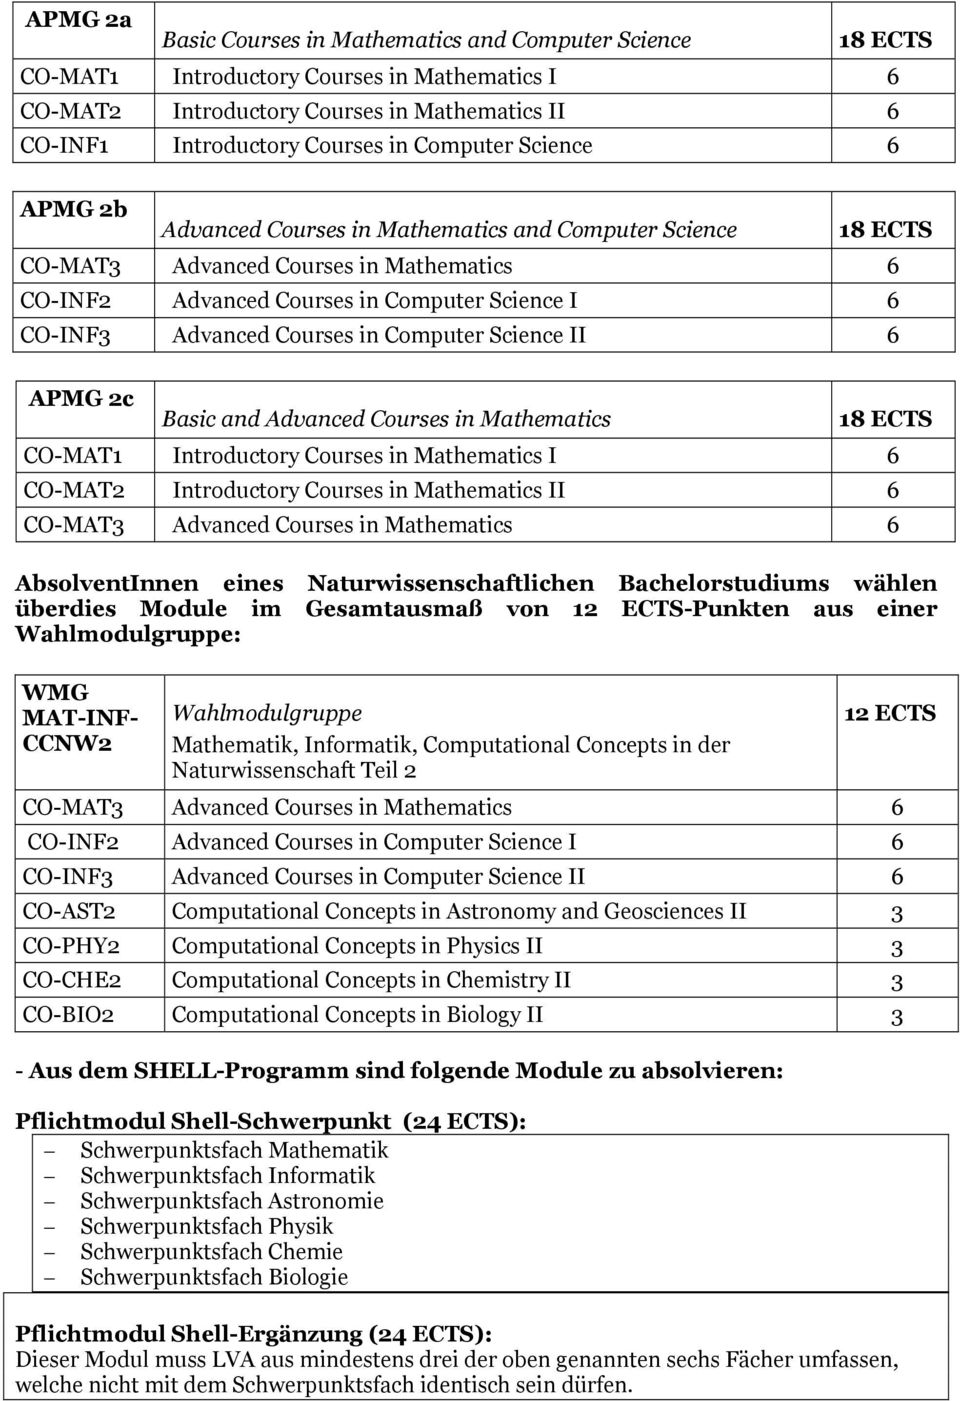 Courses in Computer Science II 6 APMG 2c Basic and Advanced Courses in Mathematics 18 ECTS CO-MAT1 Introductory Courses in Mathematics I 6 CO-MAT2 Introductory Courses in Mathematics II 6 CO-MAT3